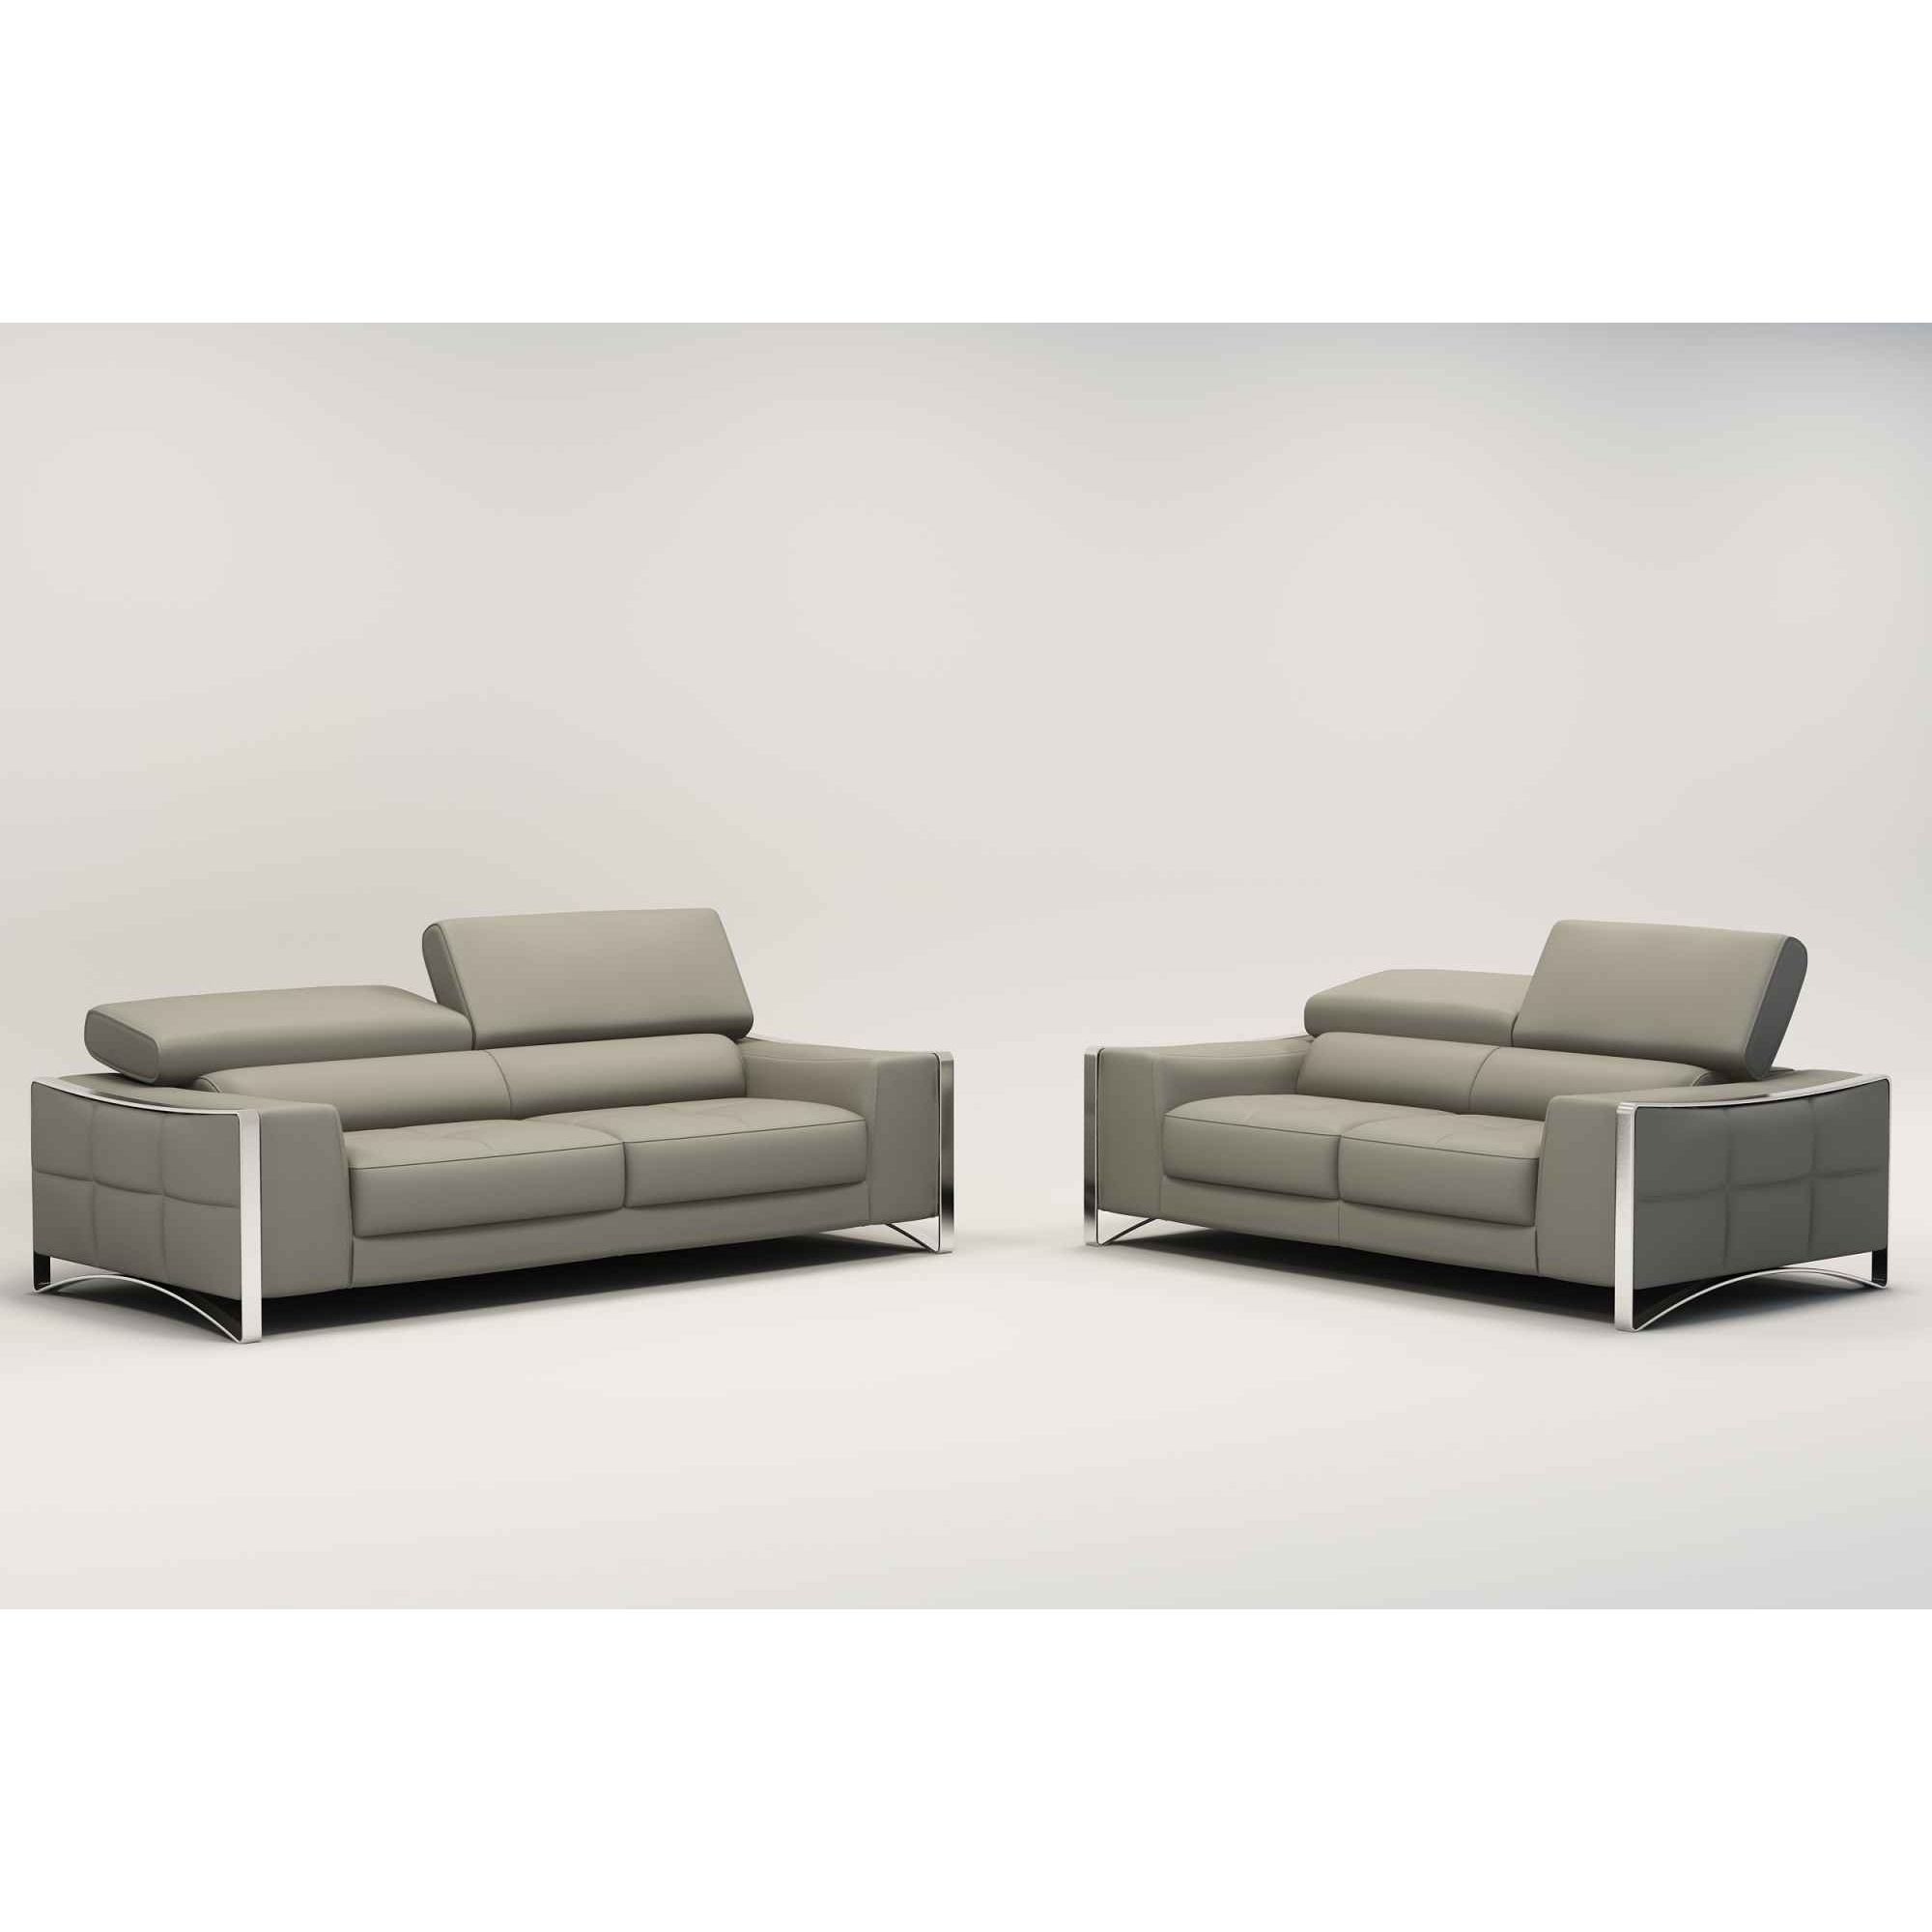 Deco in paris 3 ensemble canape cuir 3 2 places gris for Canape 2 places gris